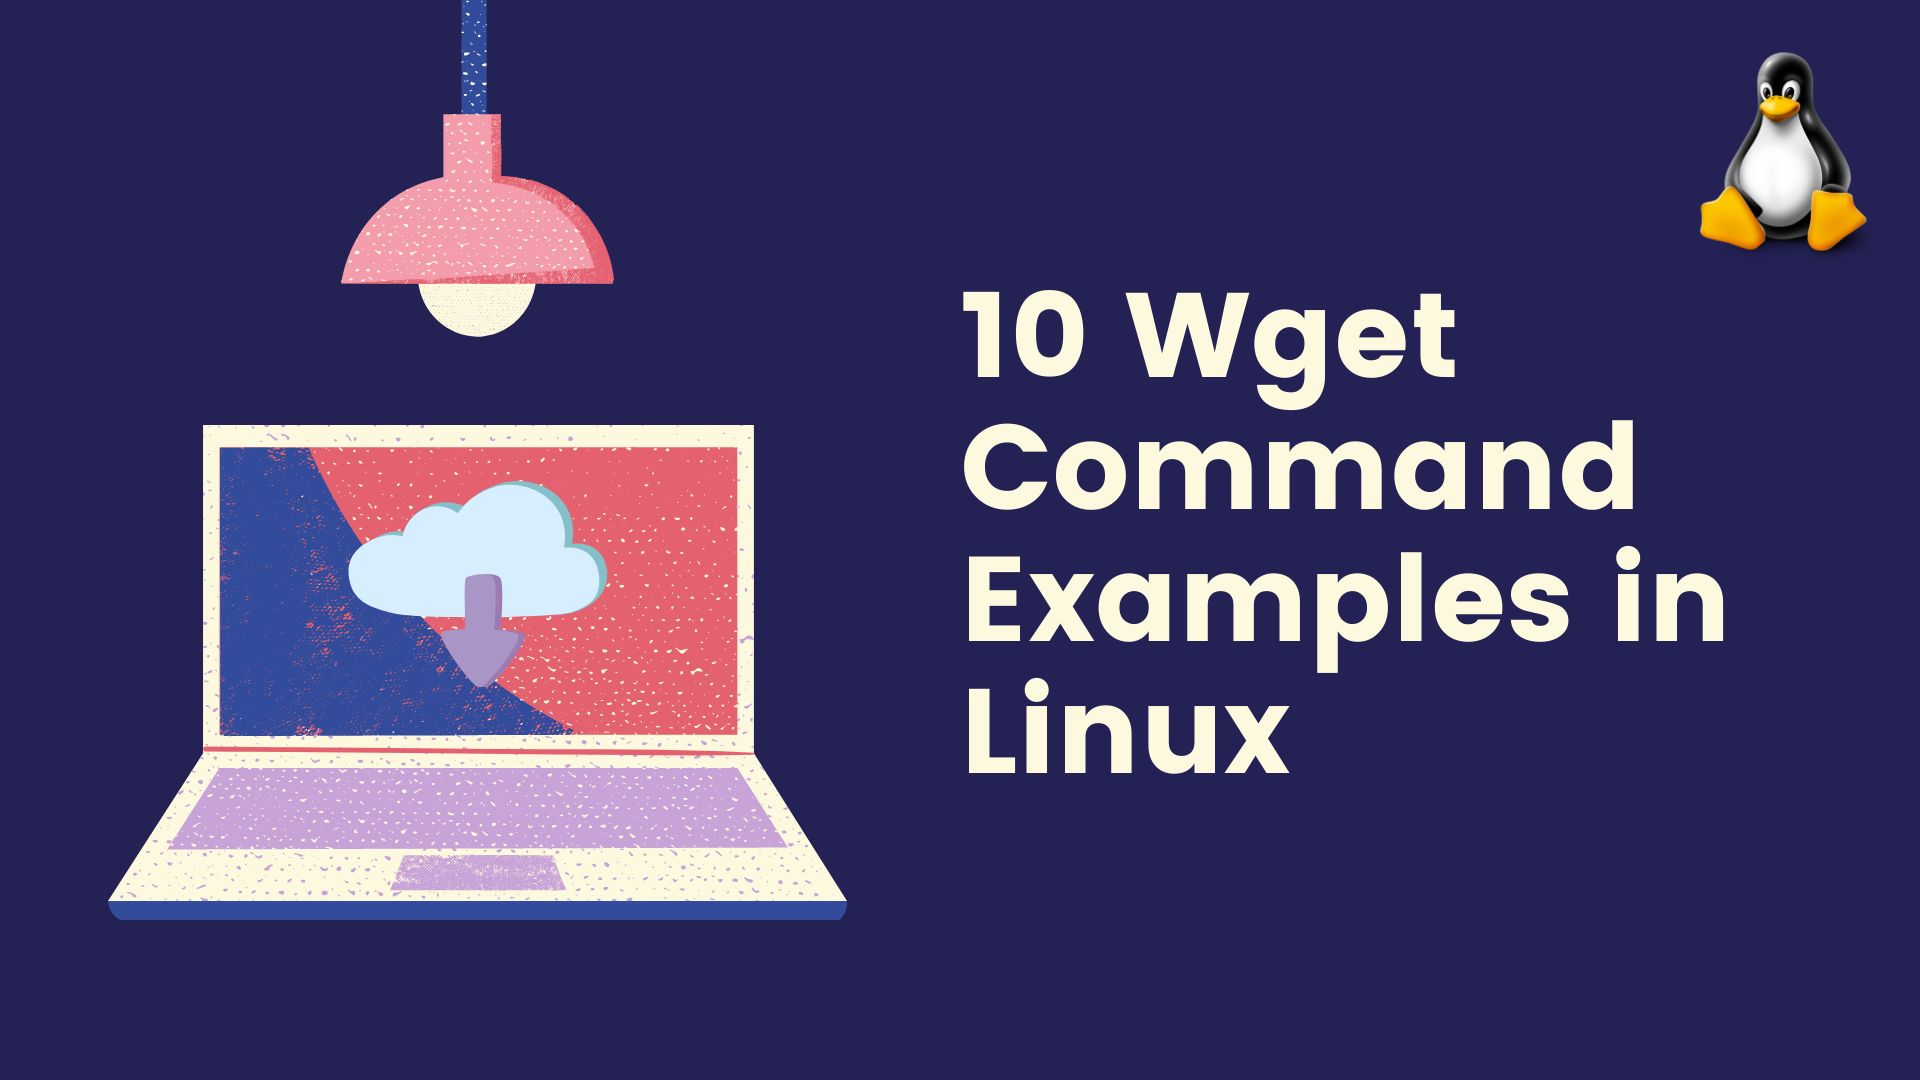 10 Wget Command Examples in Linux